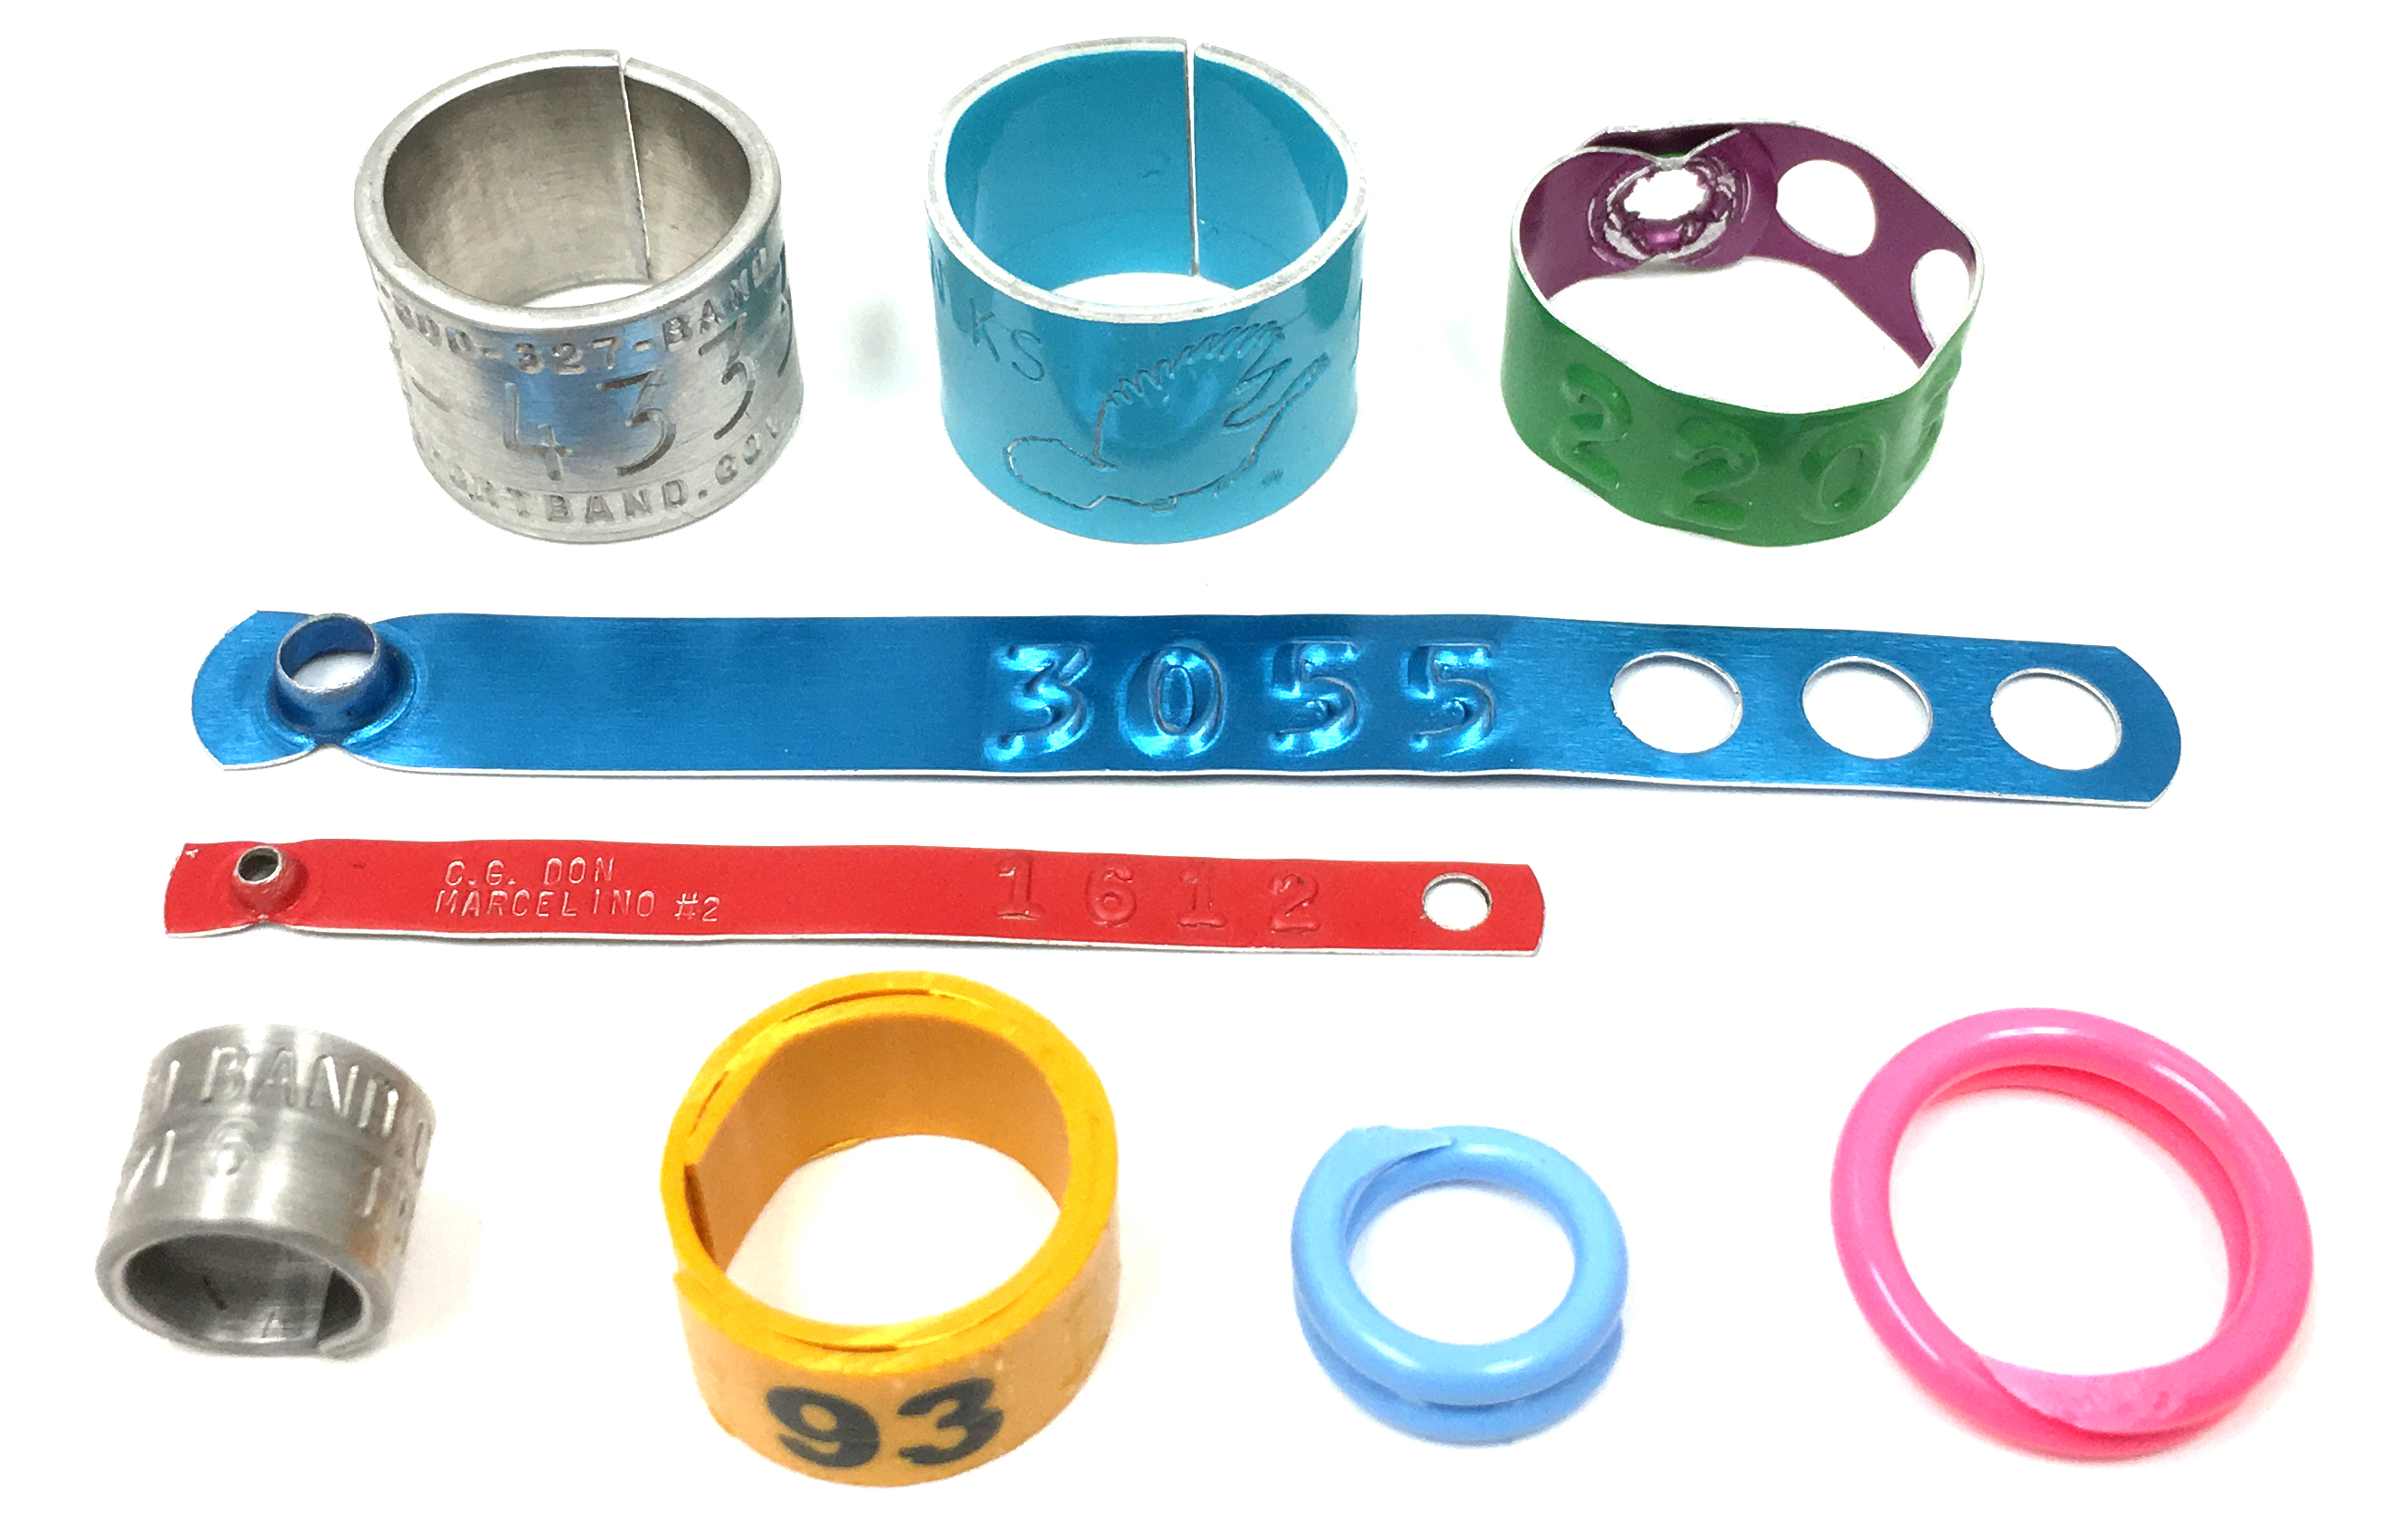 legbands for spanish site